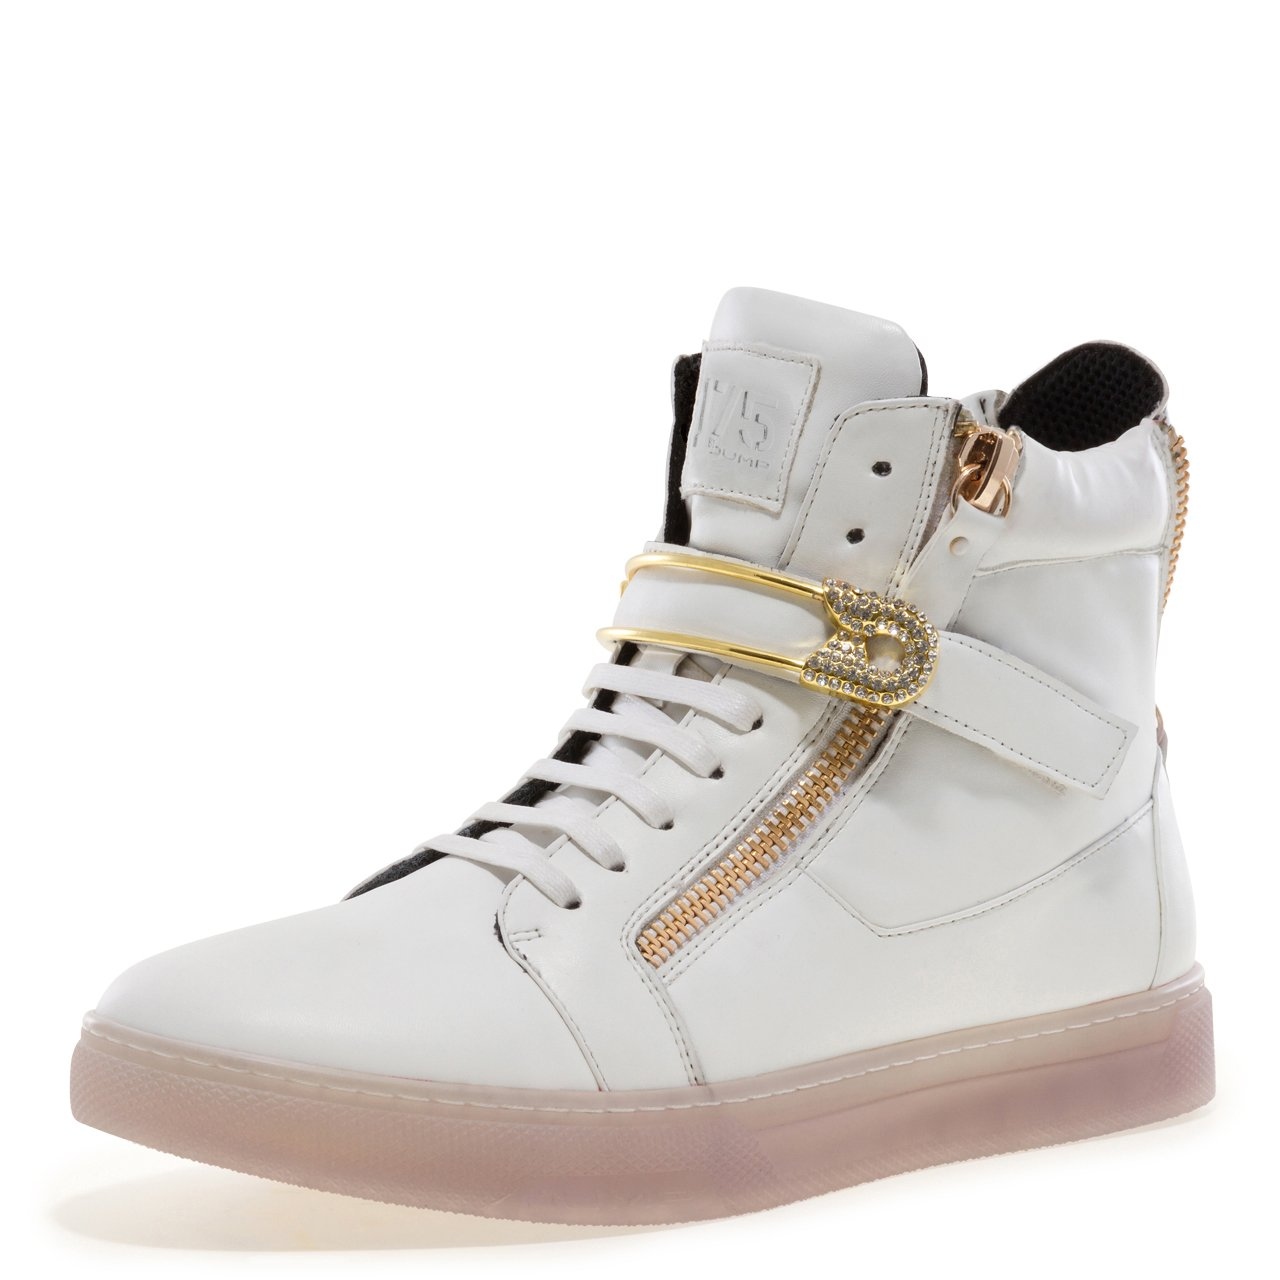 J75 by Jump Men's Zion Round Toe Rhinestone Strap Lace-Up High-Top Sneaker White 9 D US Men